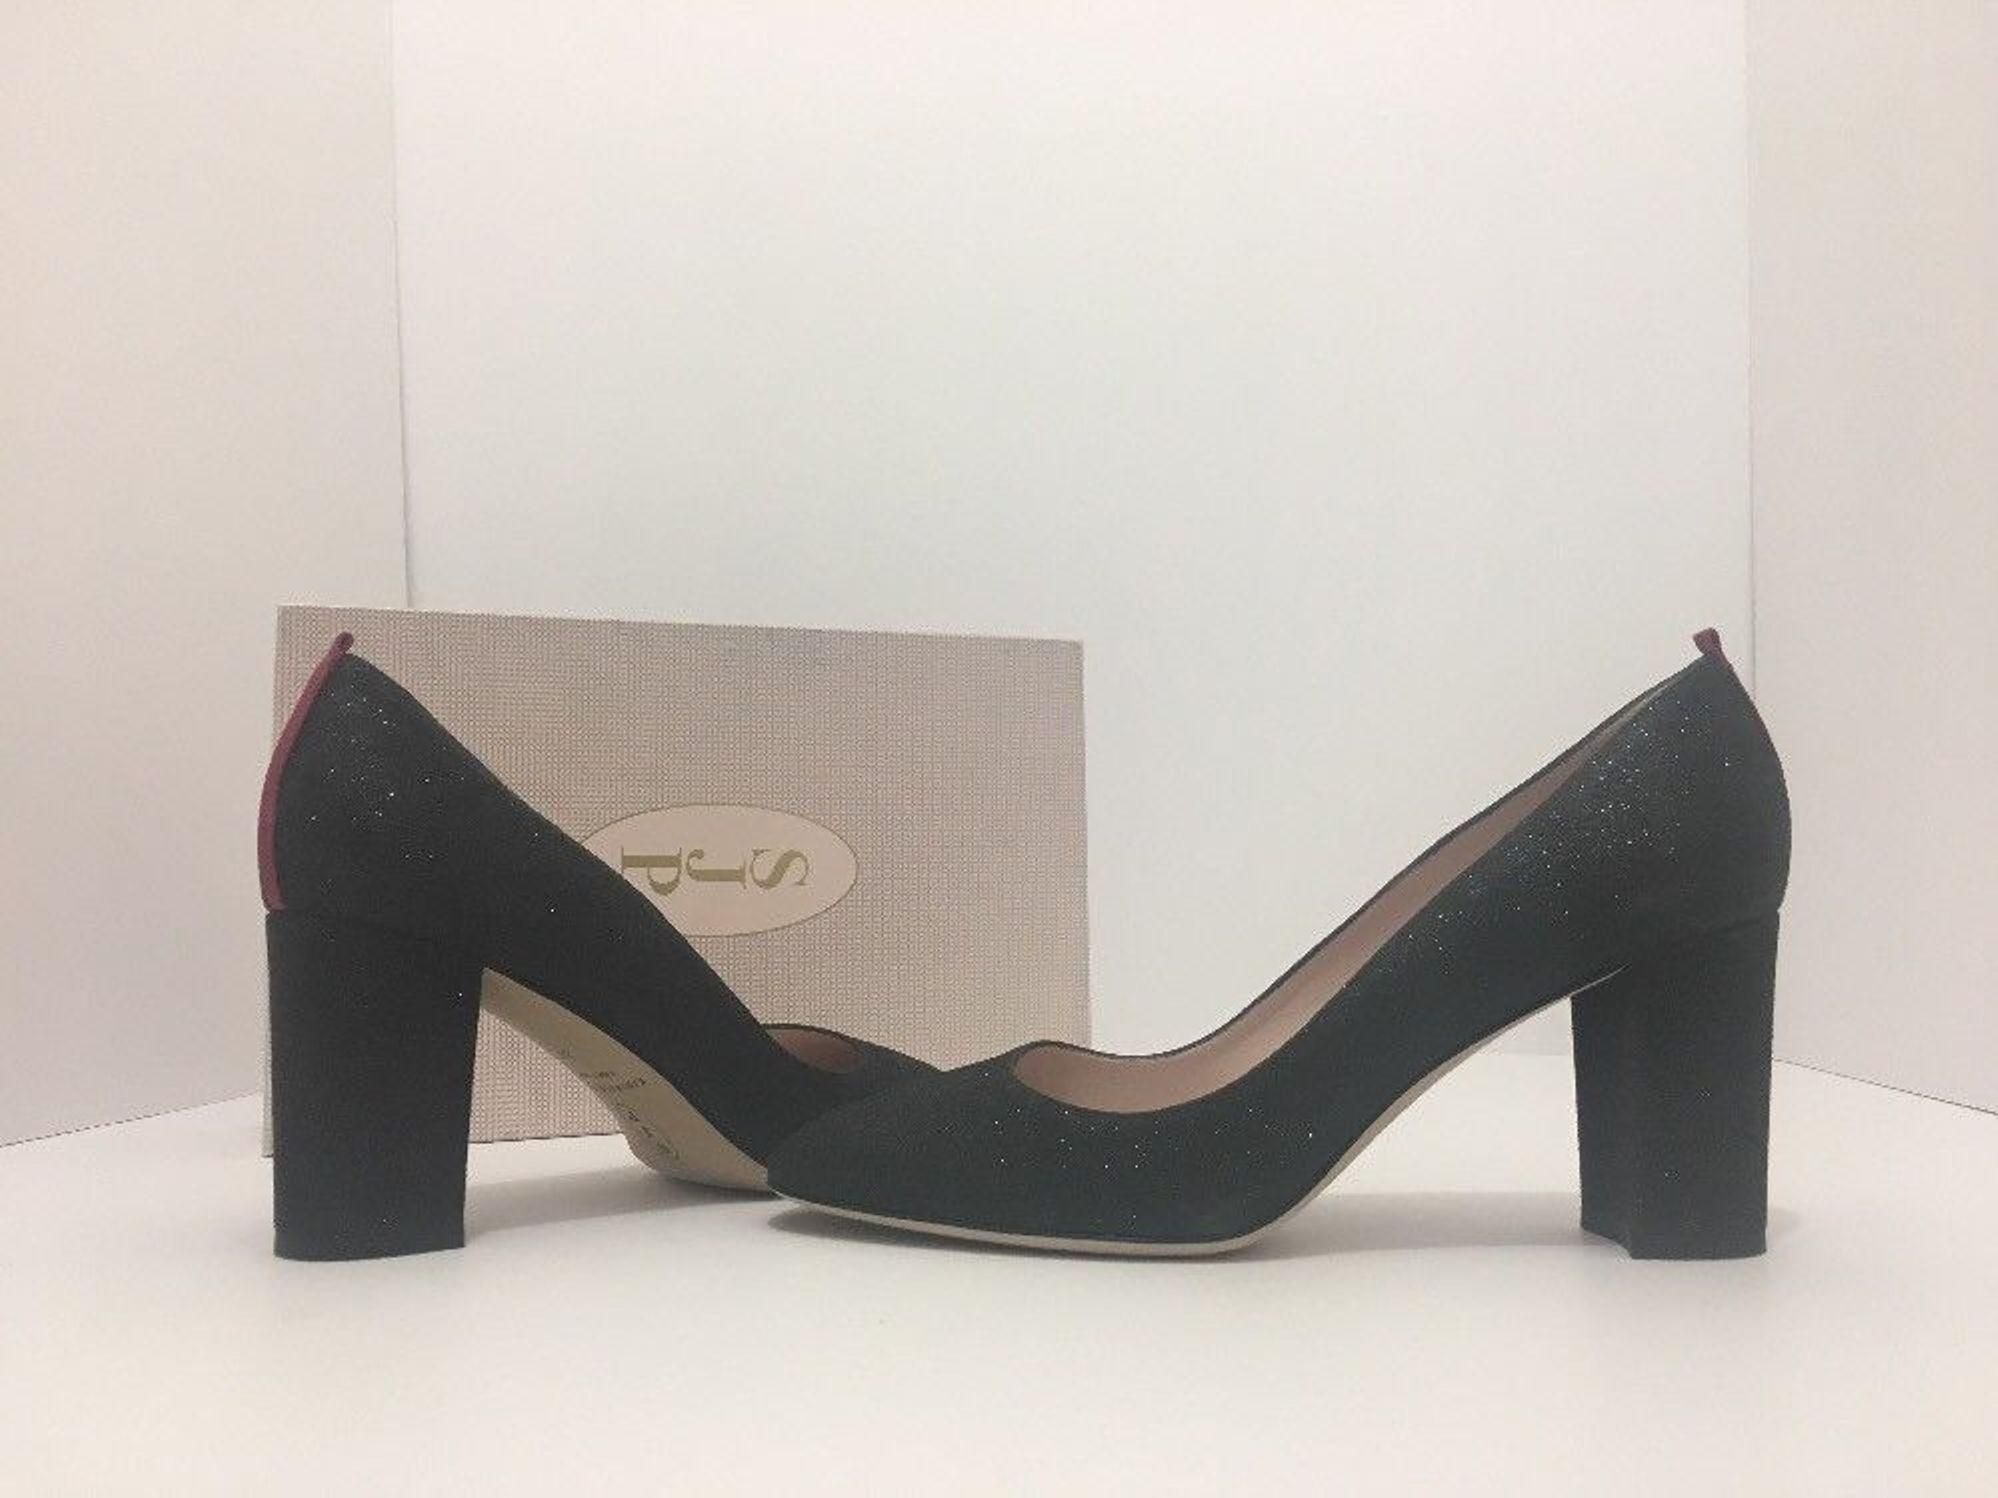 a878e632a955 Stuart Weitzman Nudist Black Goosebump Women s Dressy Evening Heels ...